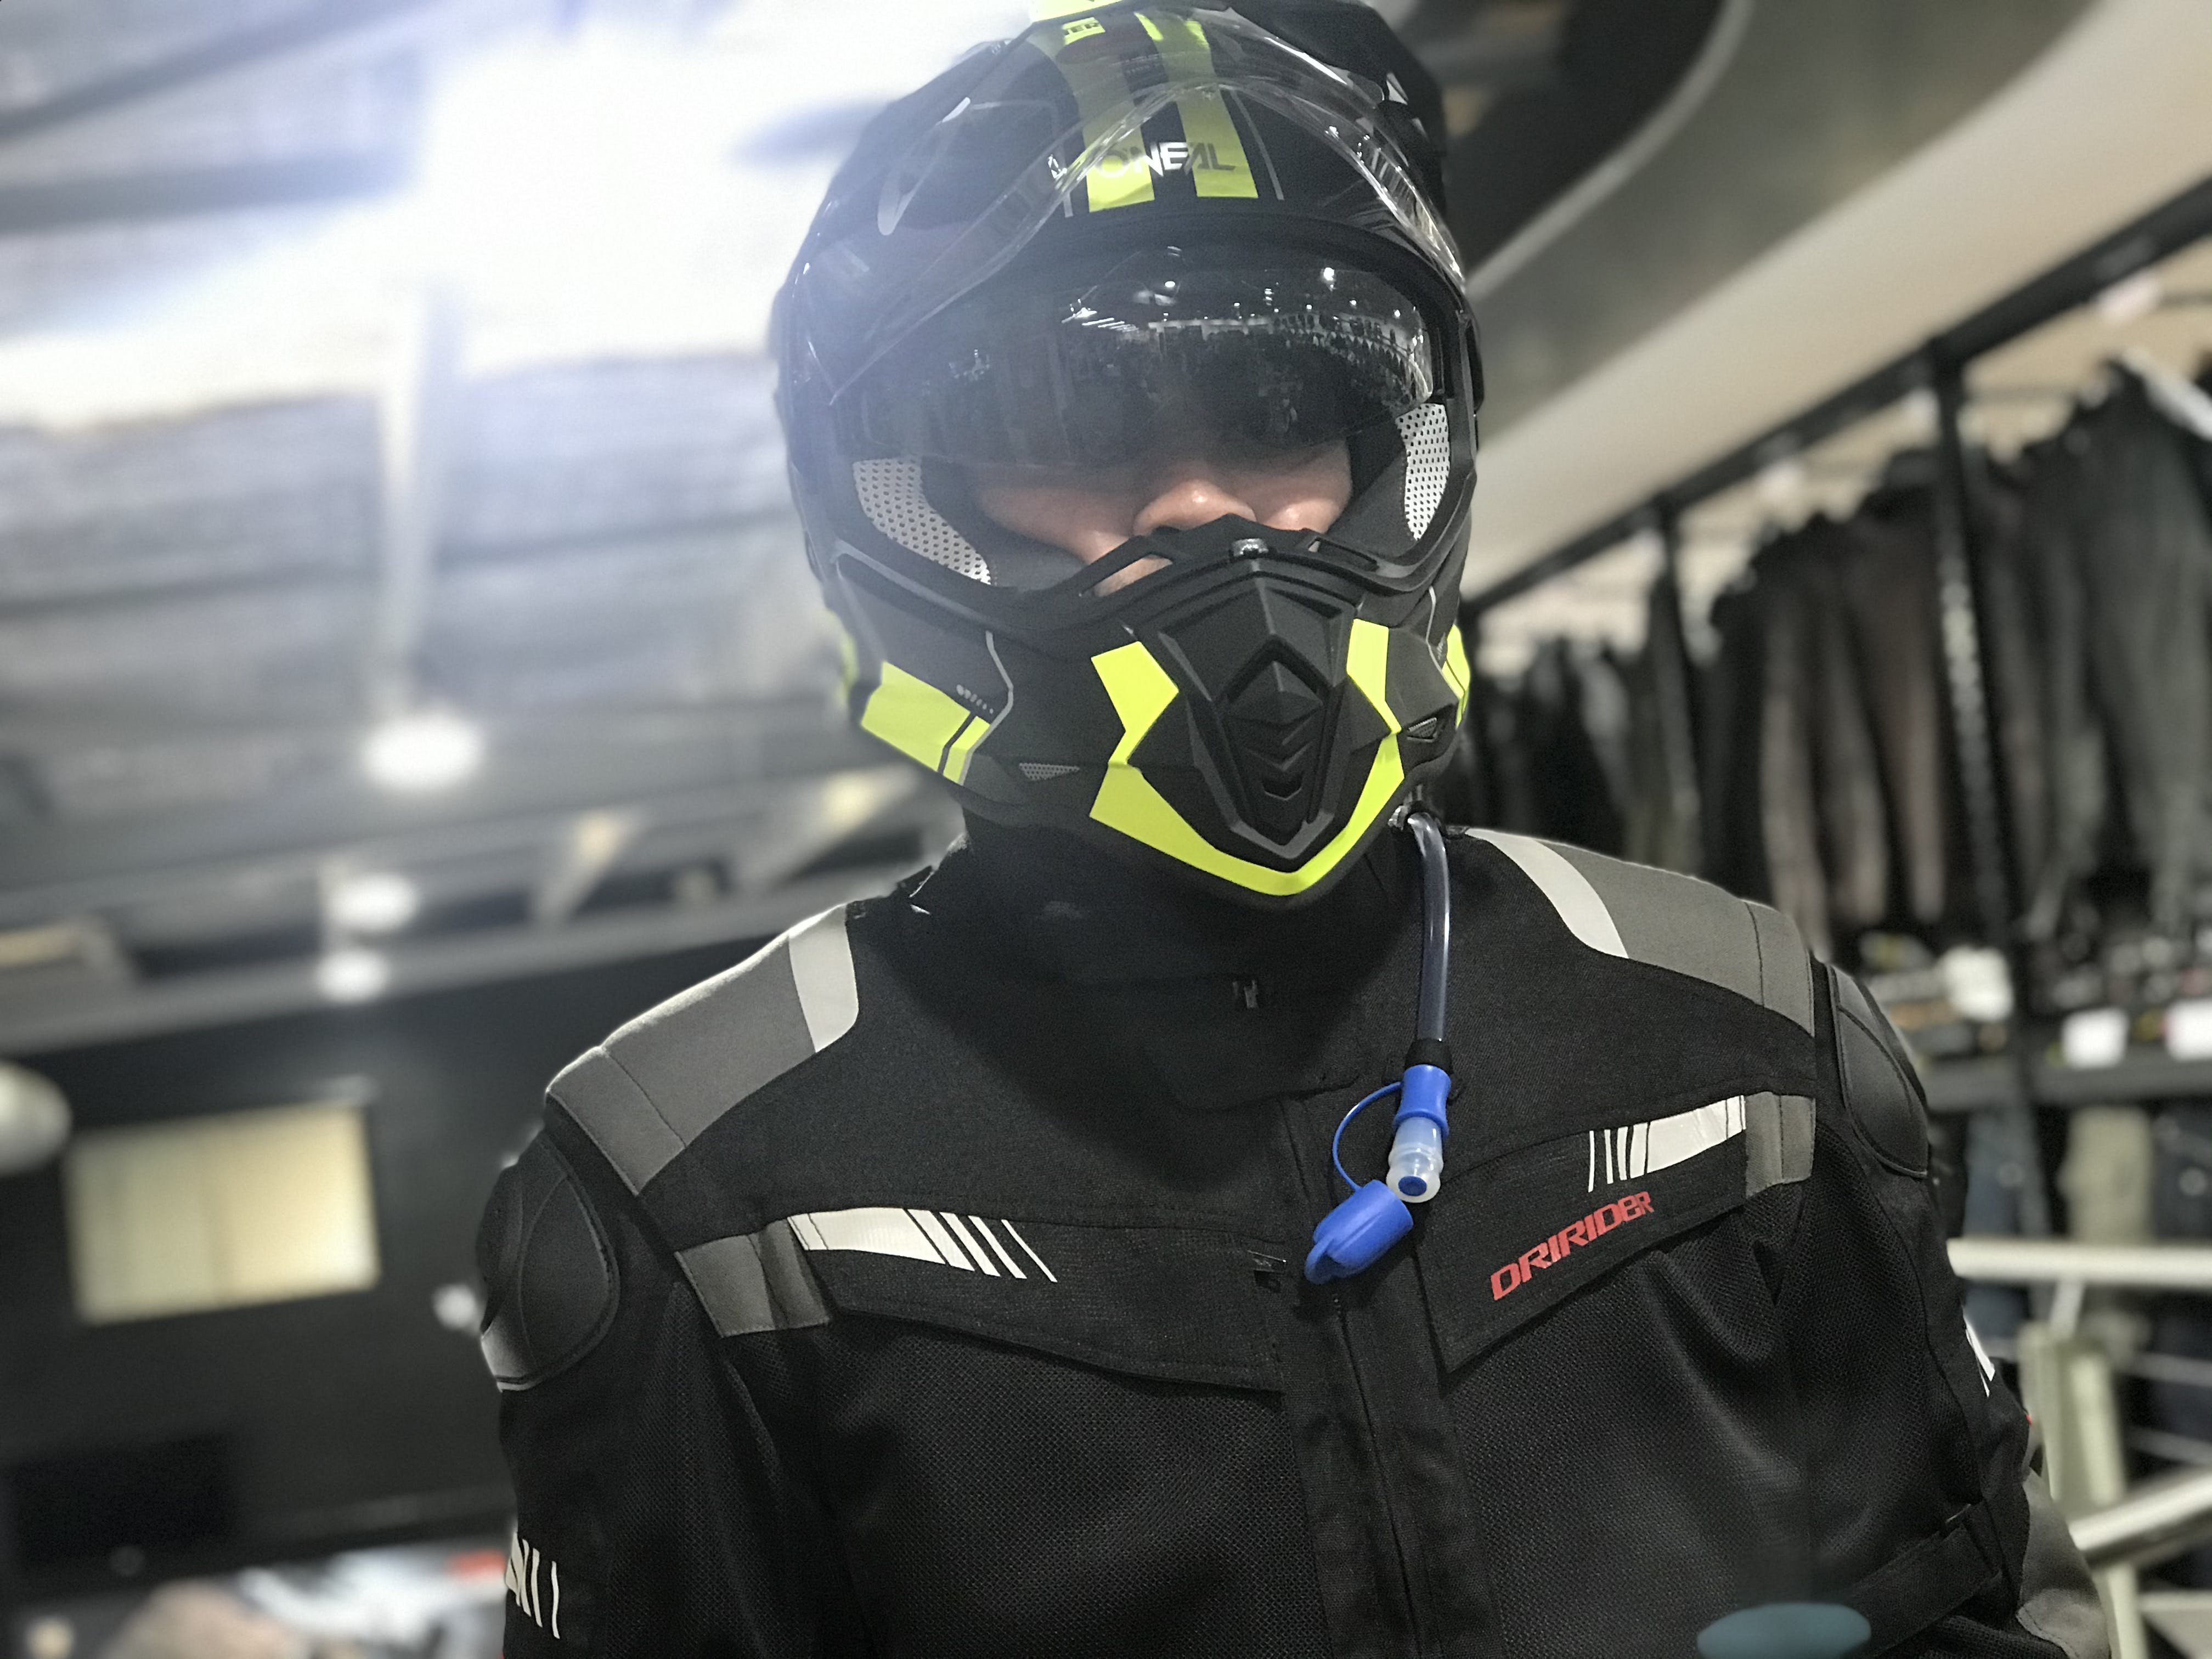 James in a black and yellow dual sport helmet